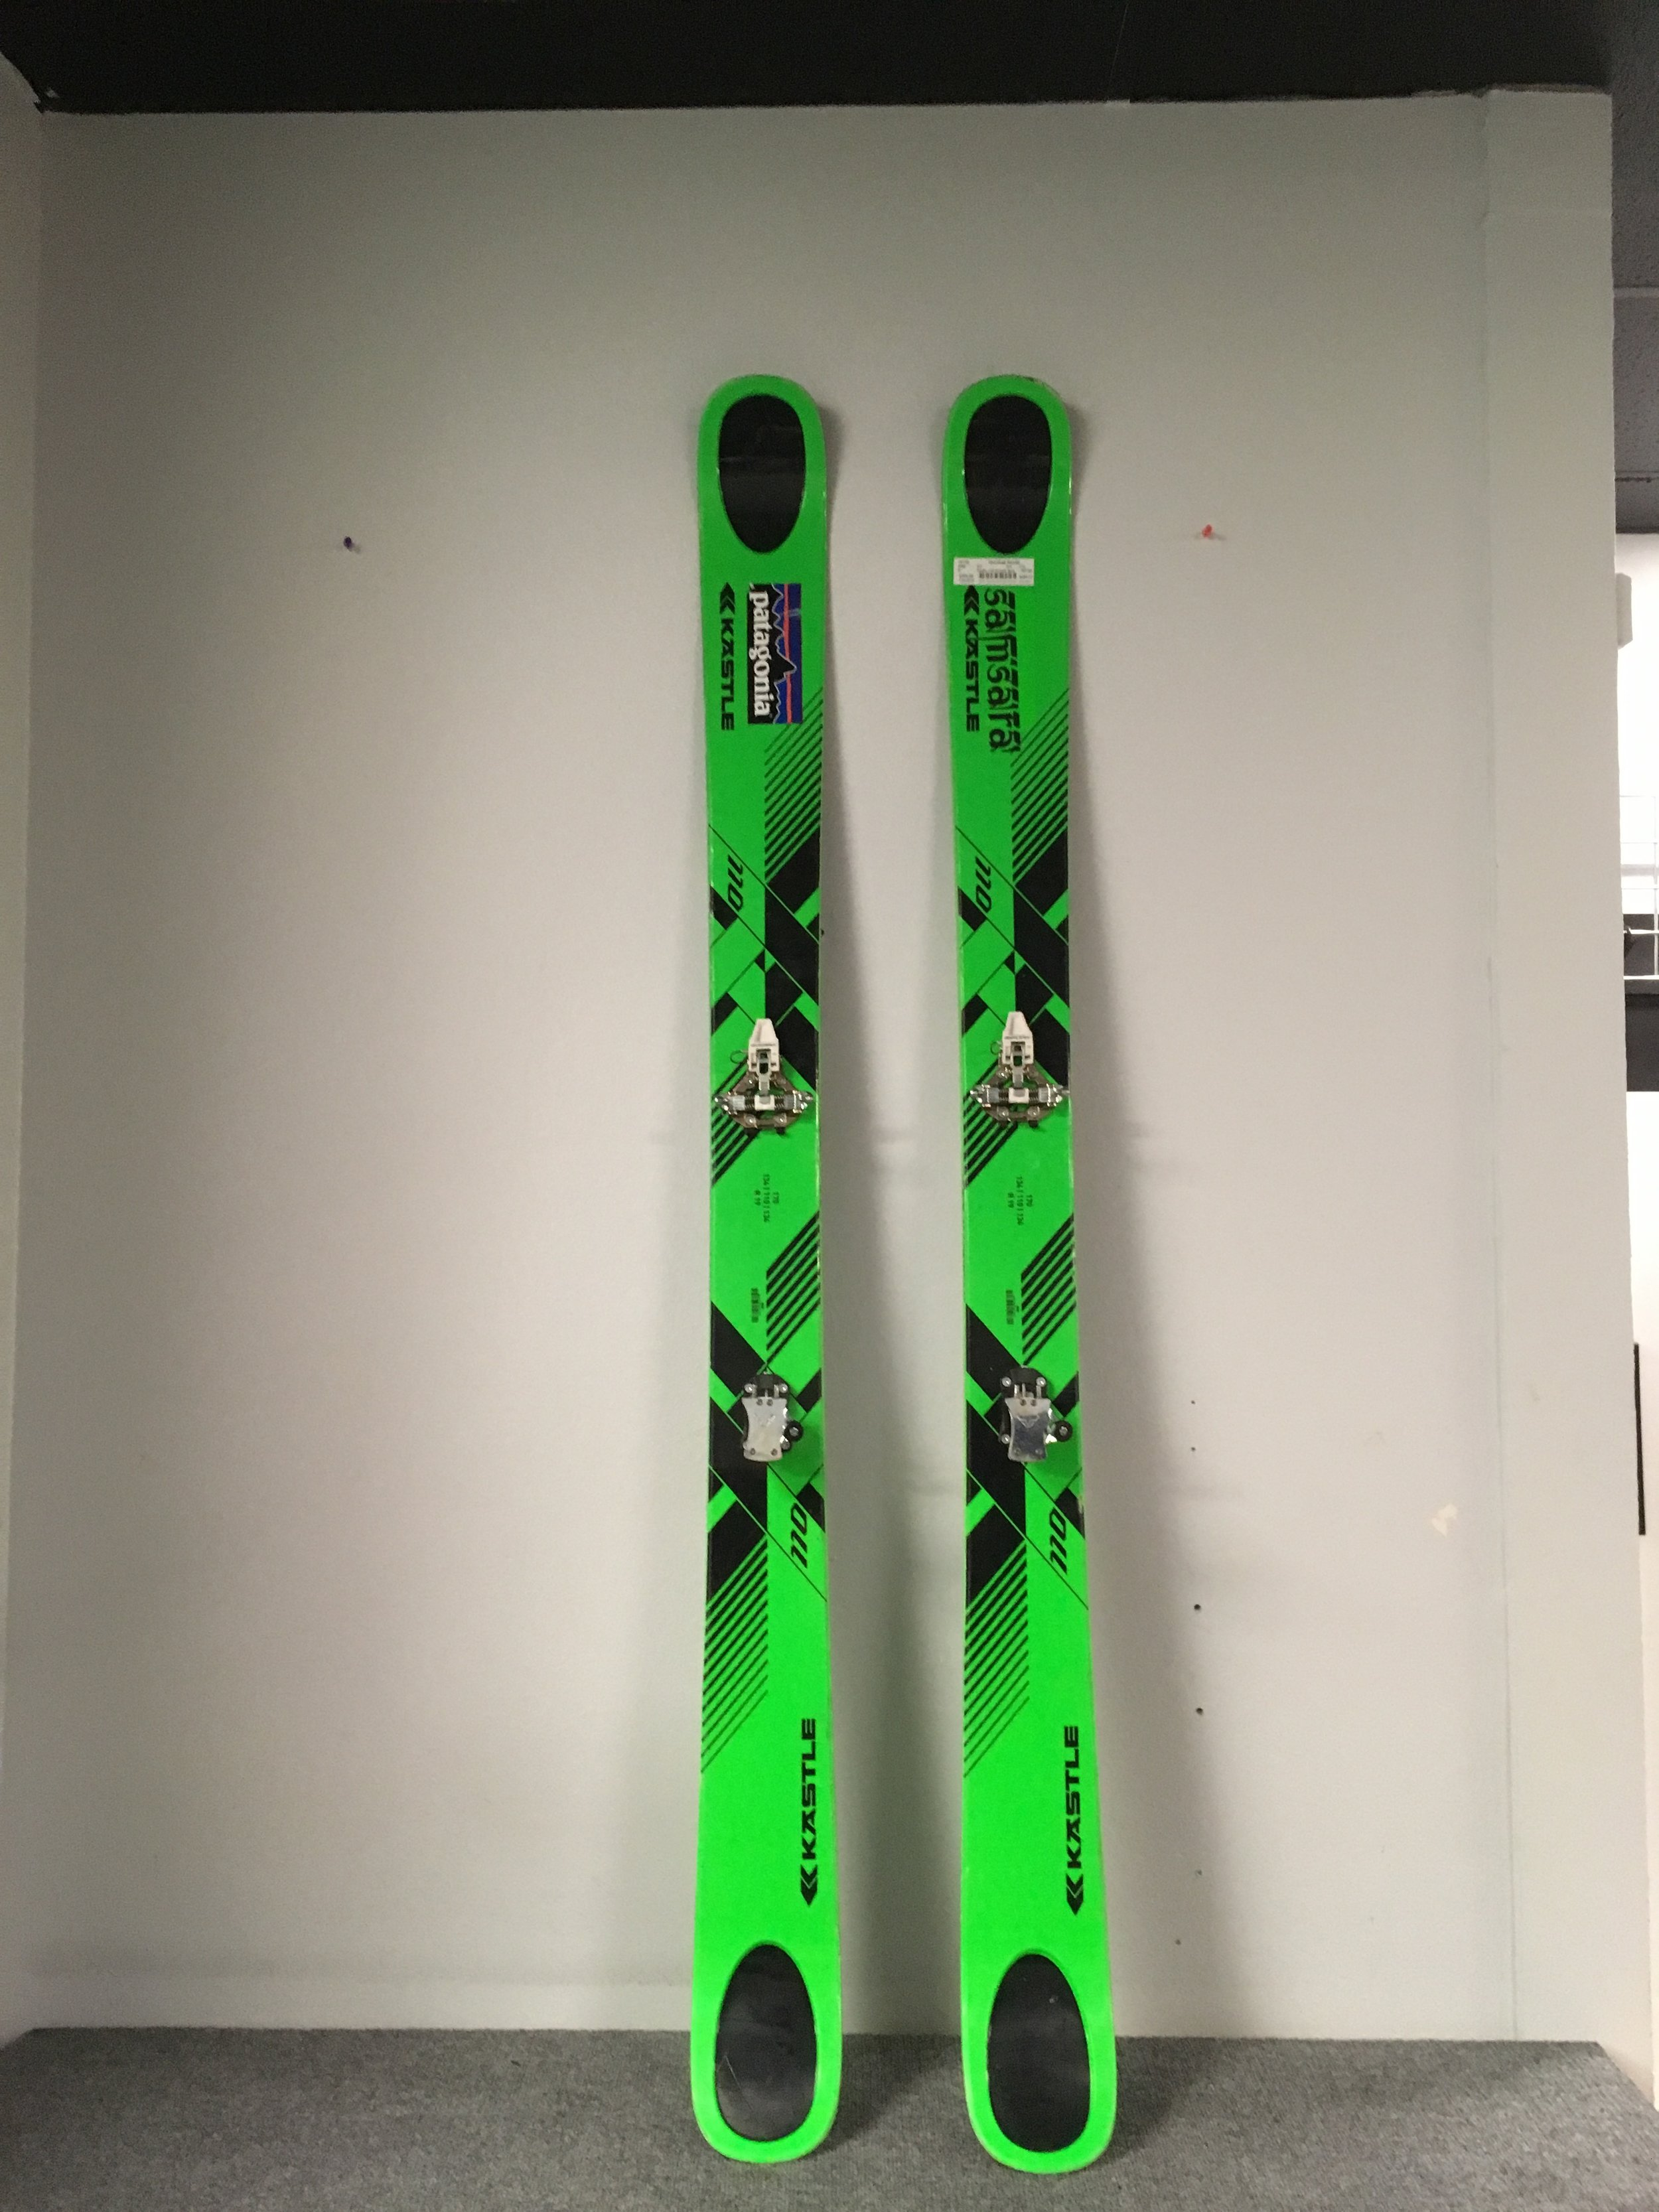 Here's a needle in a haystack. Kastle's 2016 XX 110 with Dynafit's 2013/2014 Speed bindings! Easily a $1,000 setup that we have priced at $399. The length is 170 and binding din is 4-10.